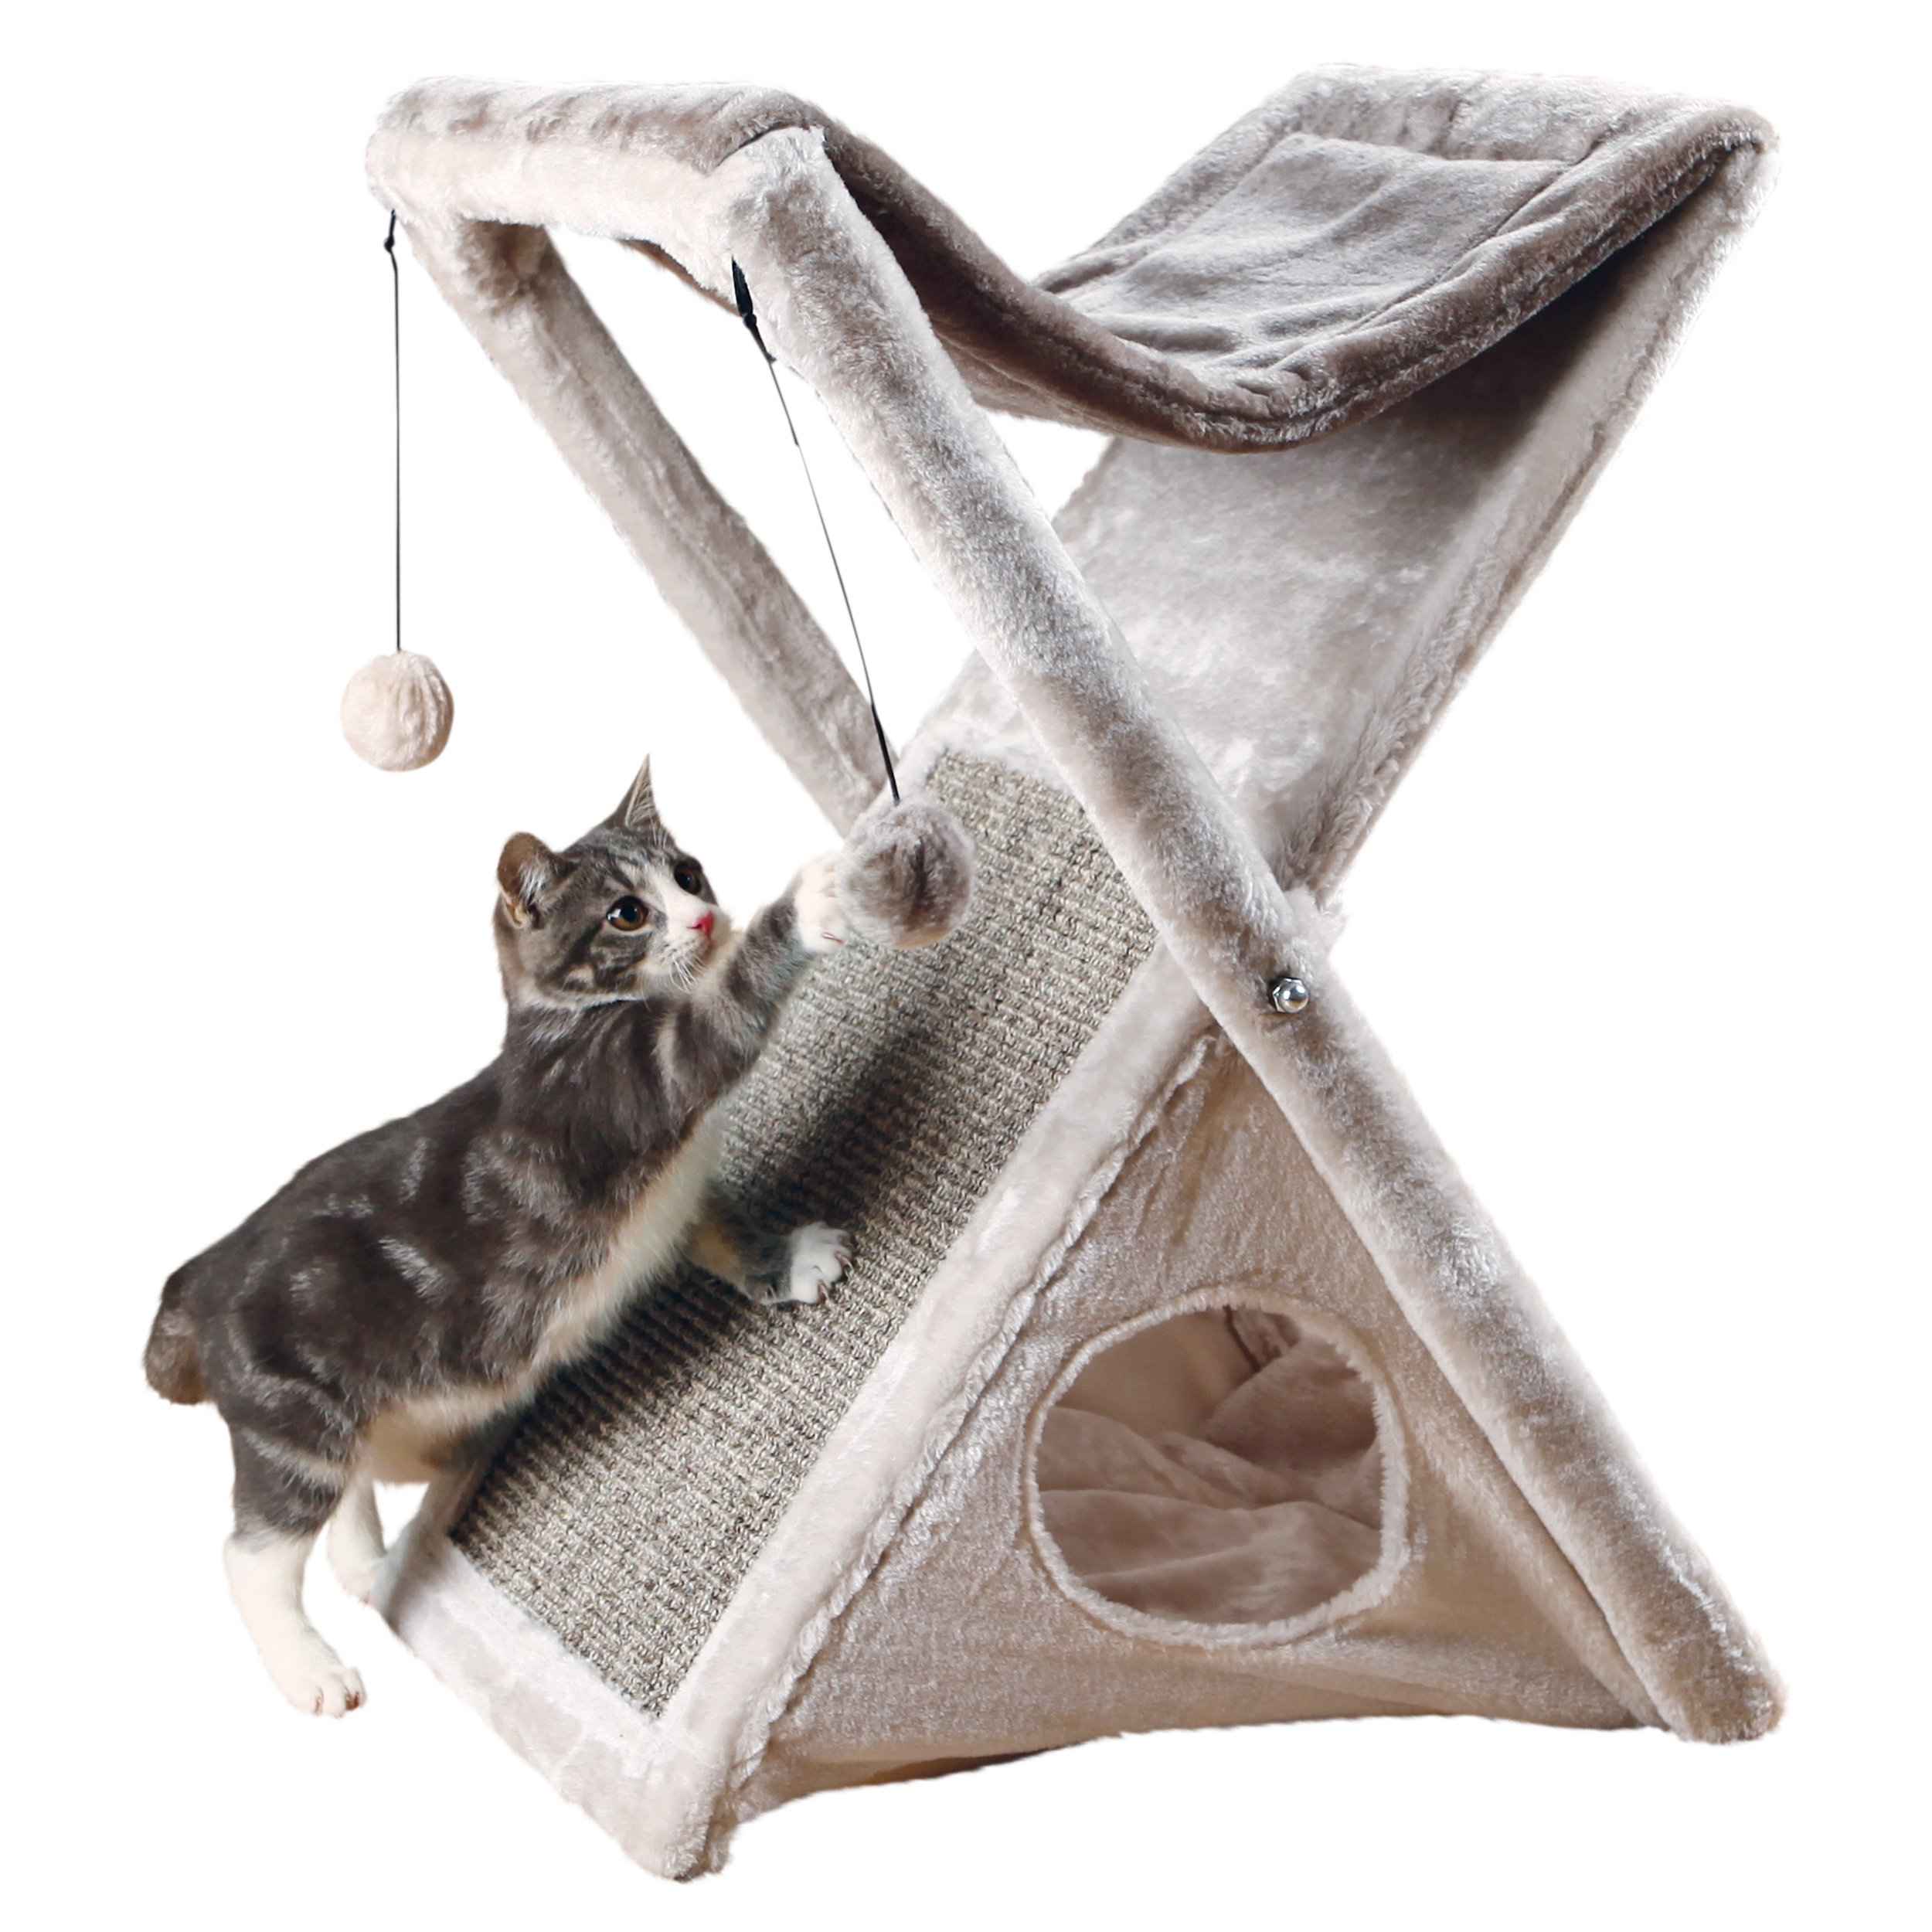 Trixie Pet Products Miguel Fold and Store Cat Tower, 20.25 x 13.75 x 25.5, Gray/Light Gray by Trixie